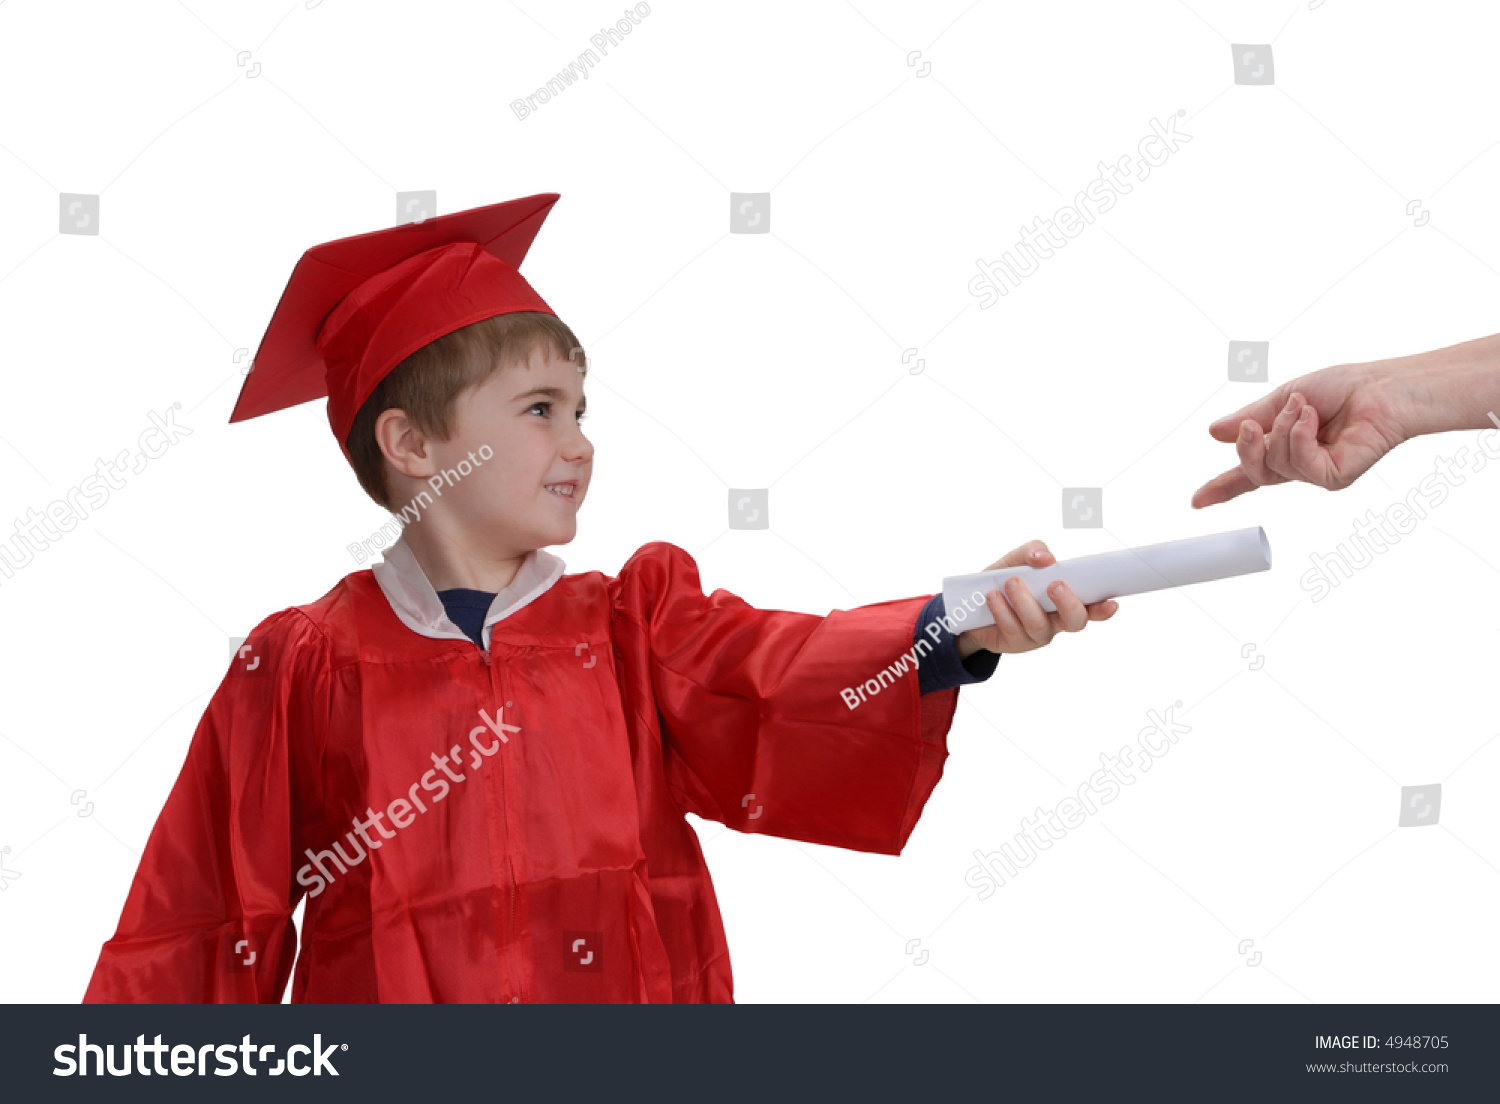 Young Boy Red Graduation Gown Hat Stock Photo (Edit Now) 4948705 ...